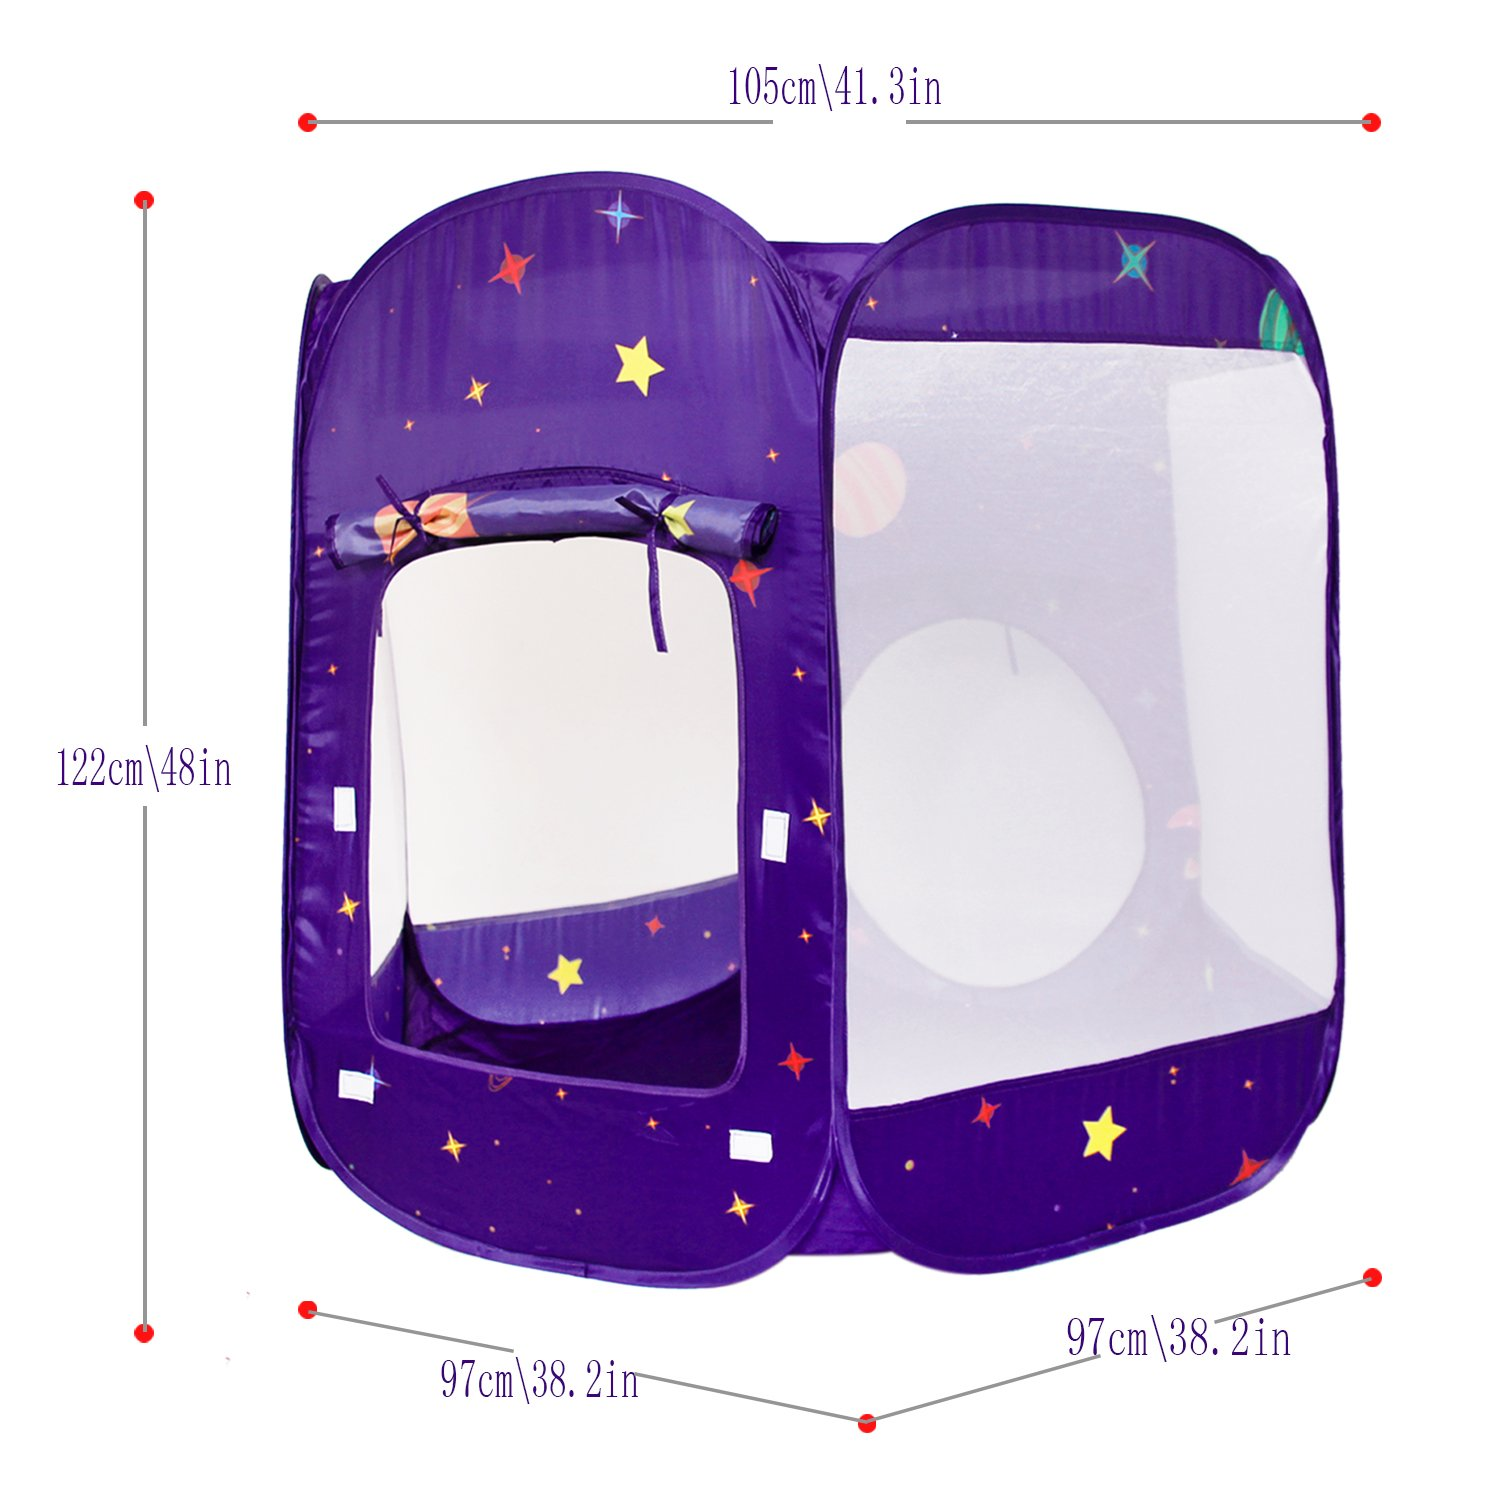 Homfu 3 in 1 Tunnel Tent for Kids Play House For Children Toddler Boys Girls Toy Crawl Outdoor Indoor Pop up Play tent